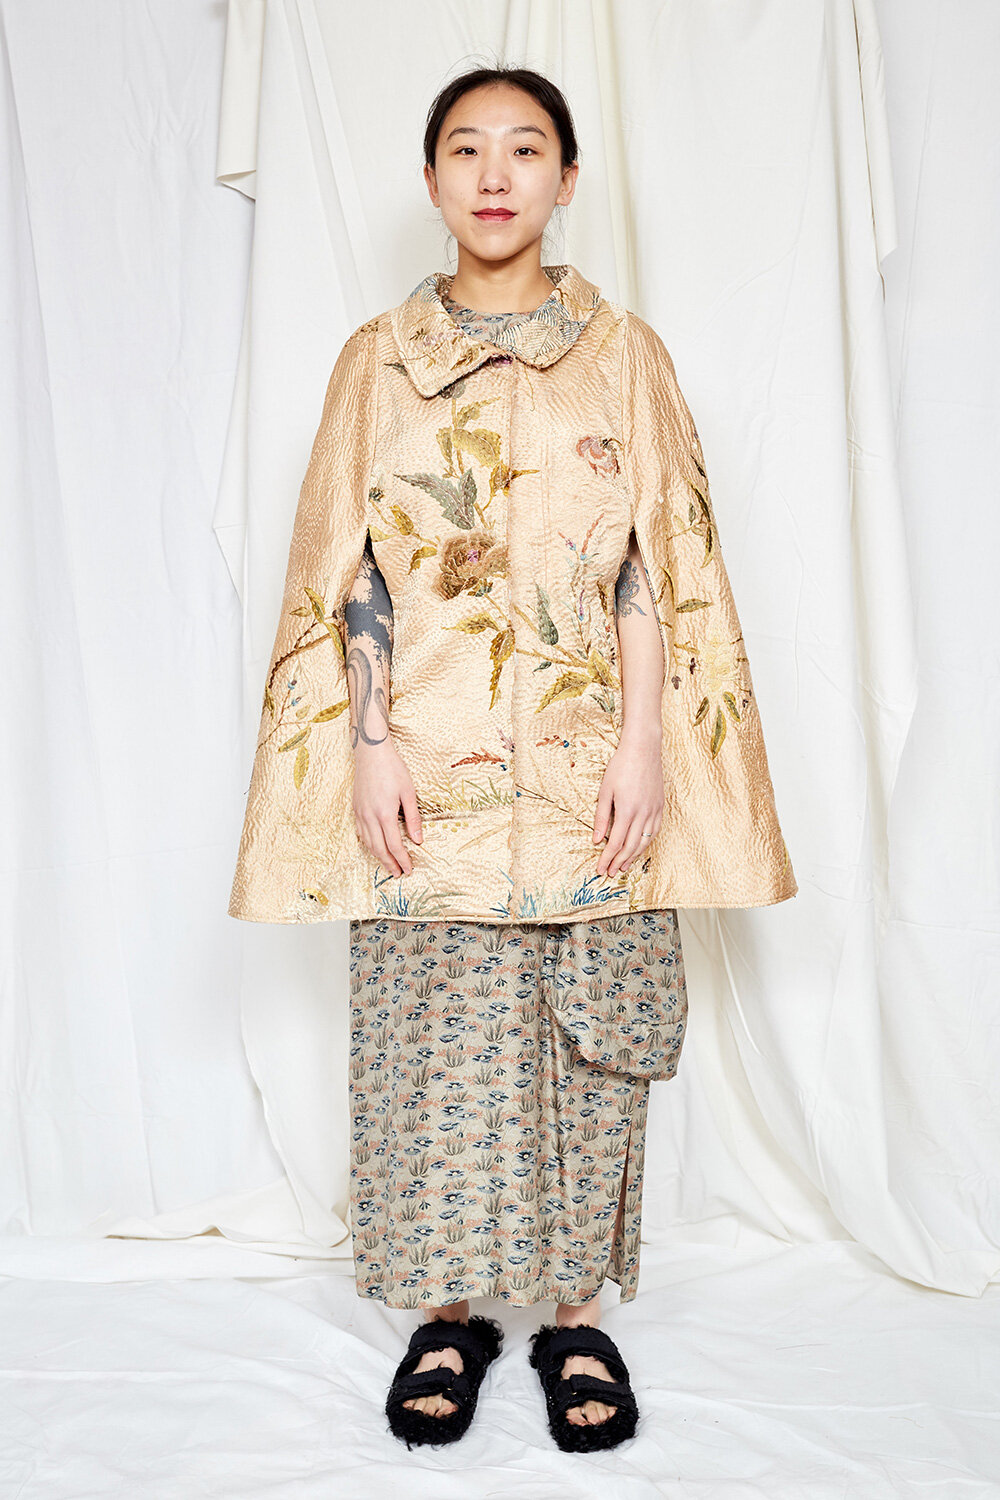 By Walid Womenswear Embroidered Cloak in Gold AW20